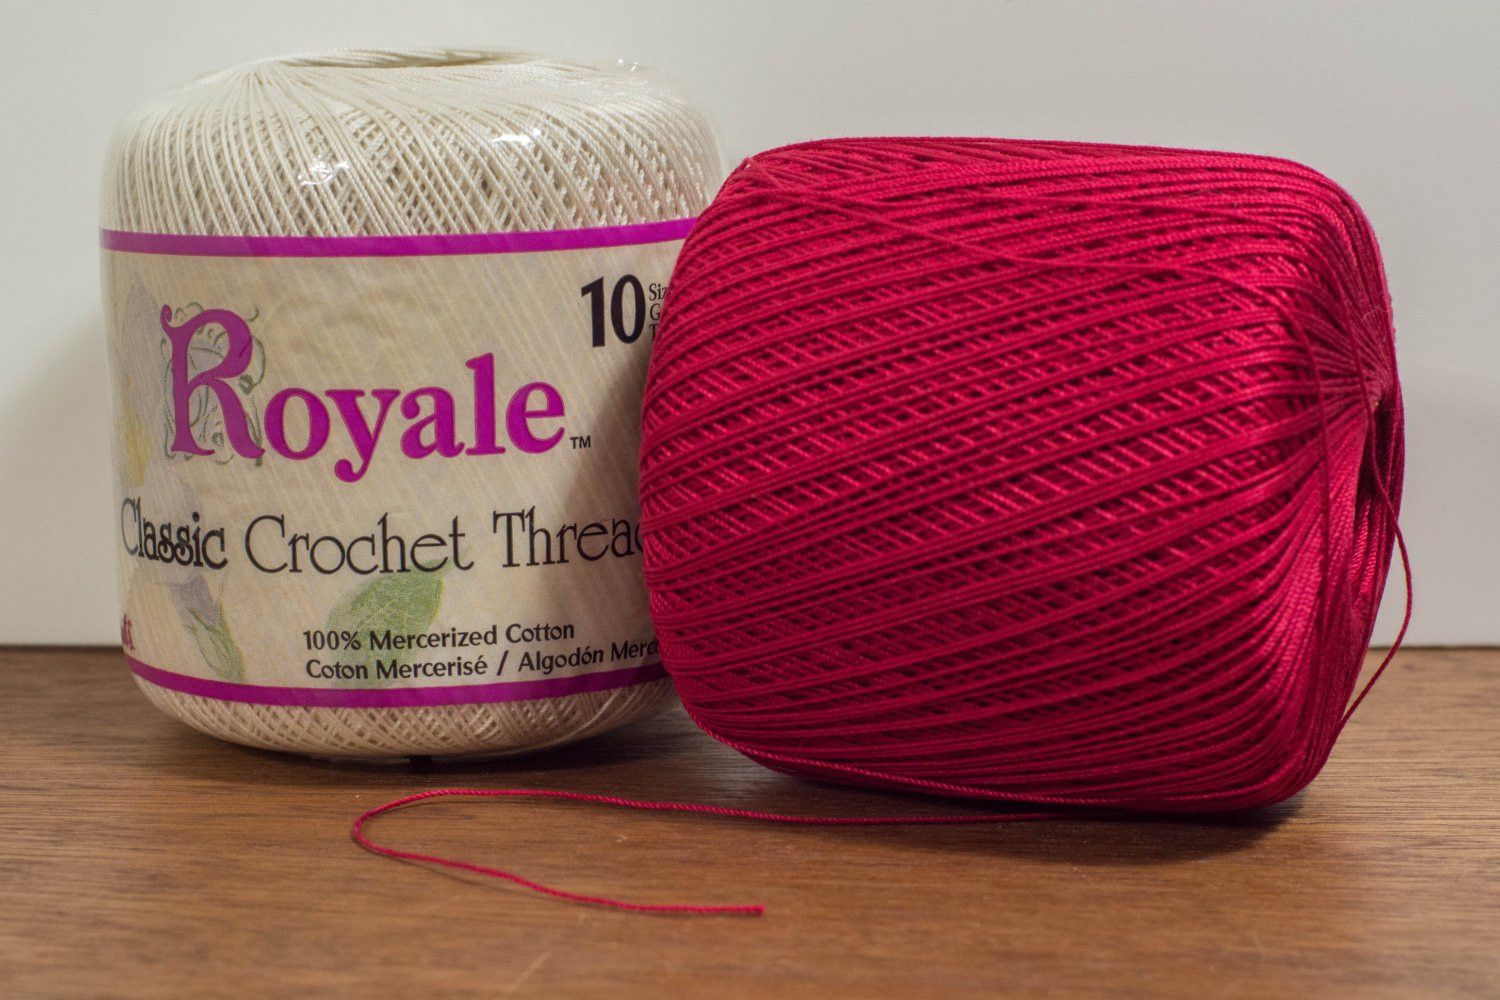 Crochet Threads Size 10 Beautiful J & P Coats Royale Cotton Crochet Thread Size 10 Two Colors Of Top 42 Ideas Crochet Threads Size 10